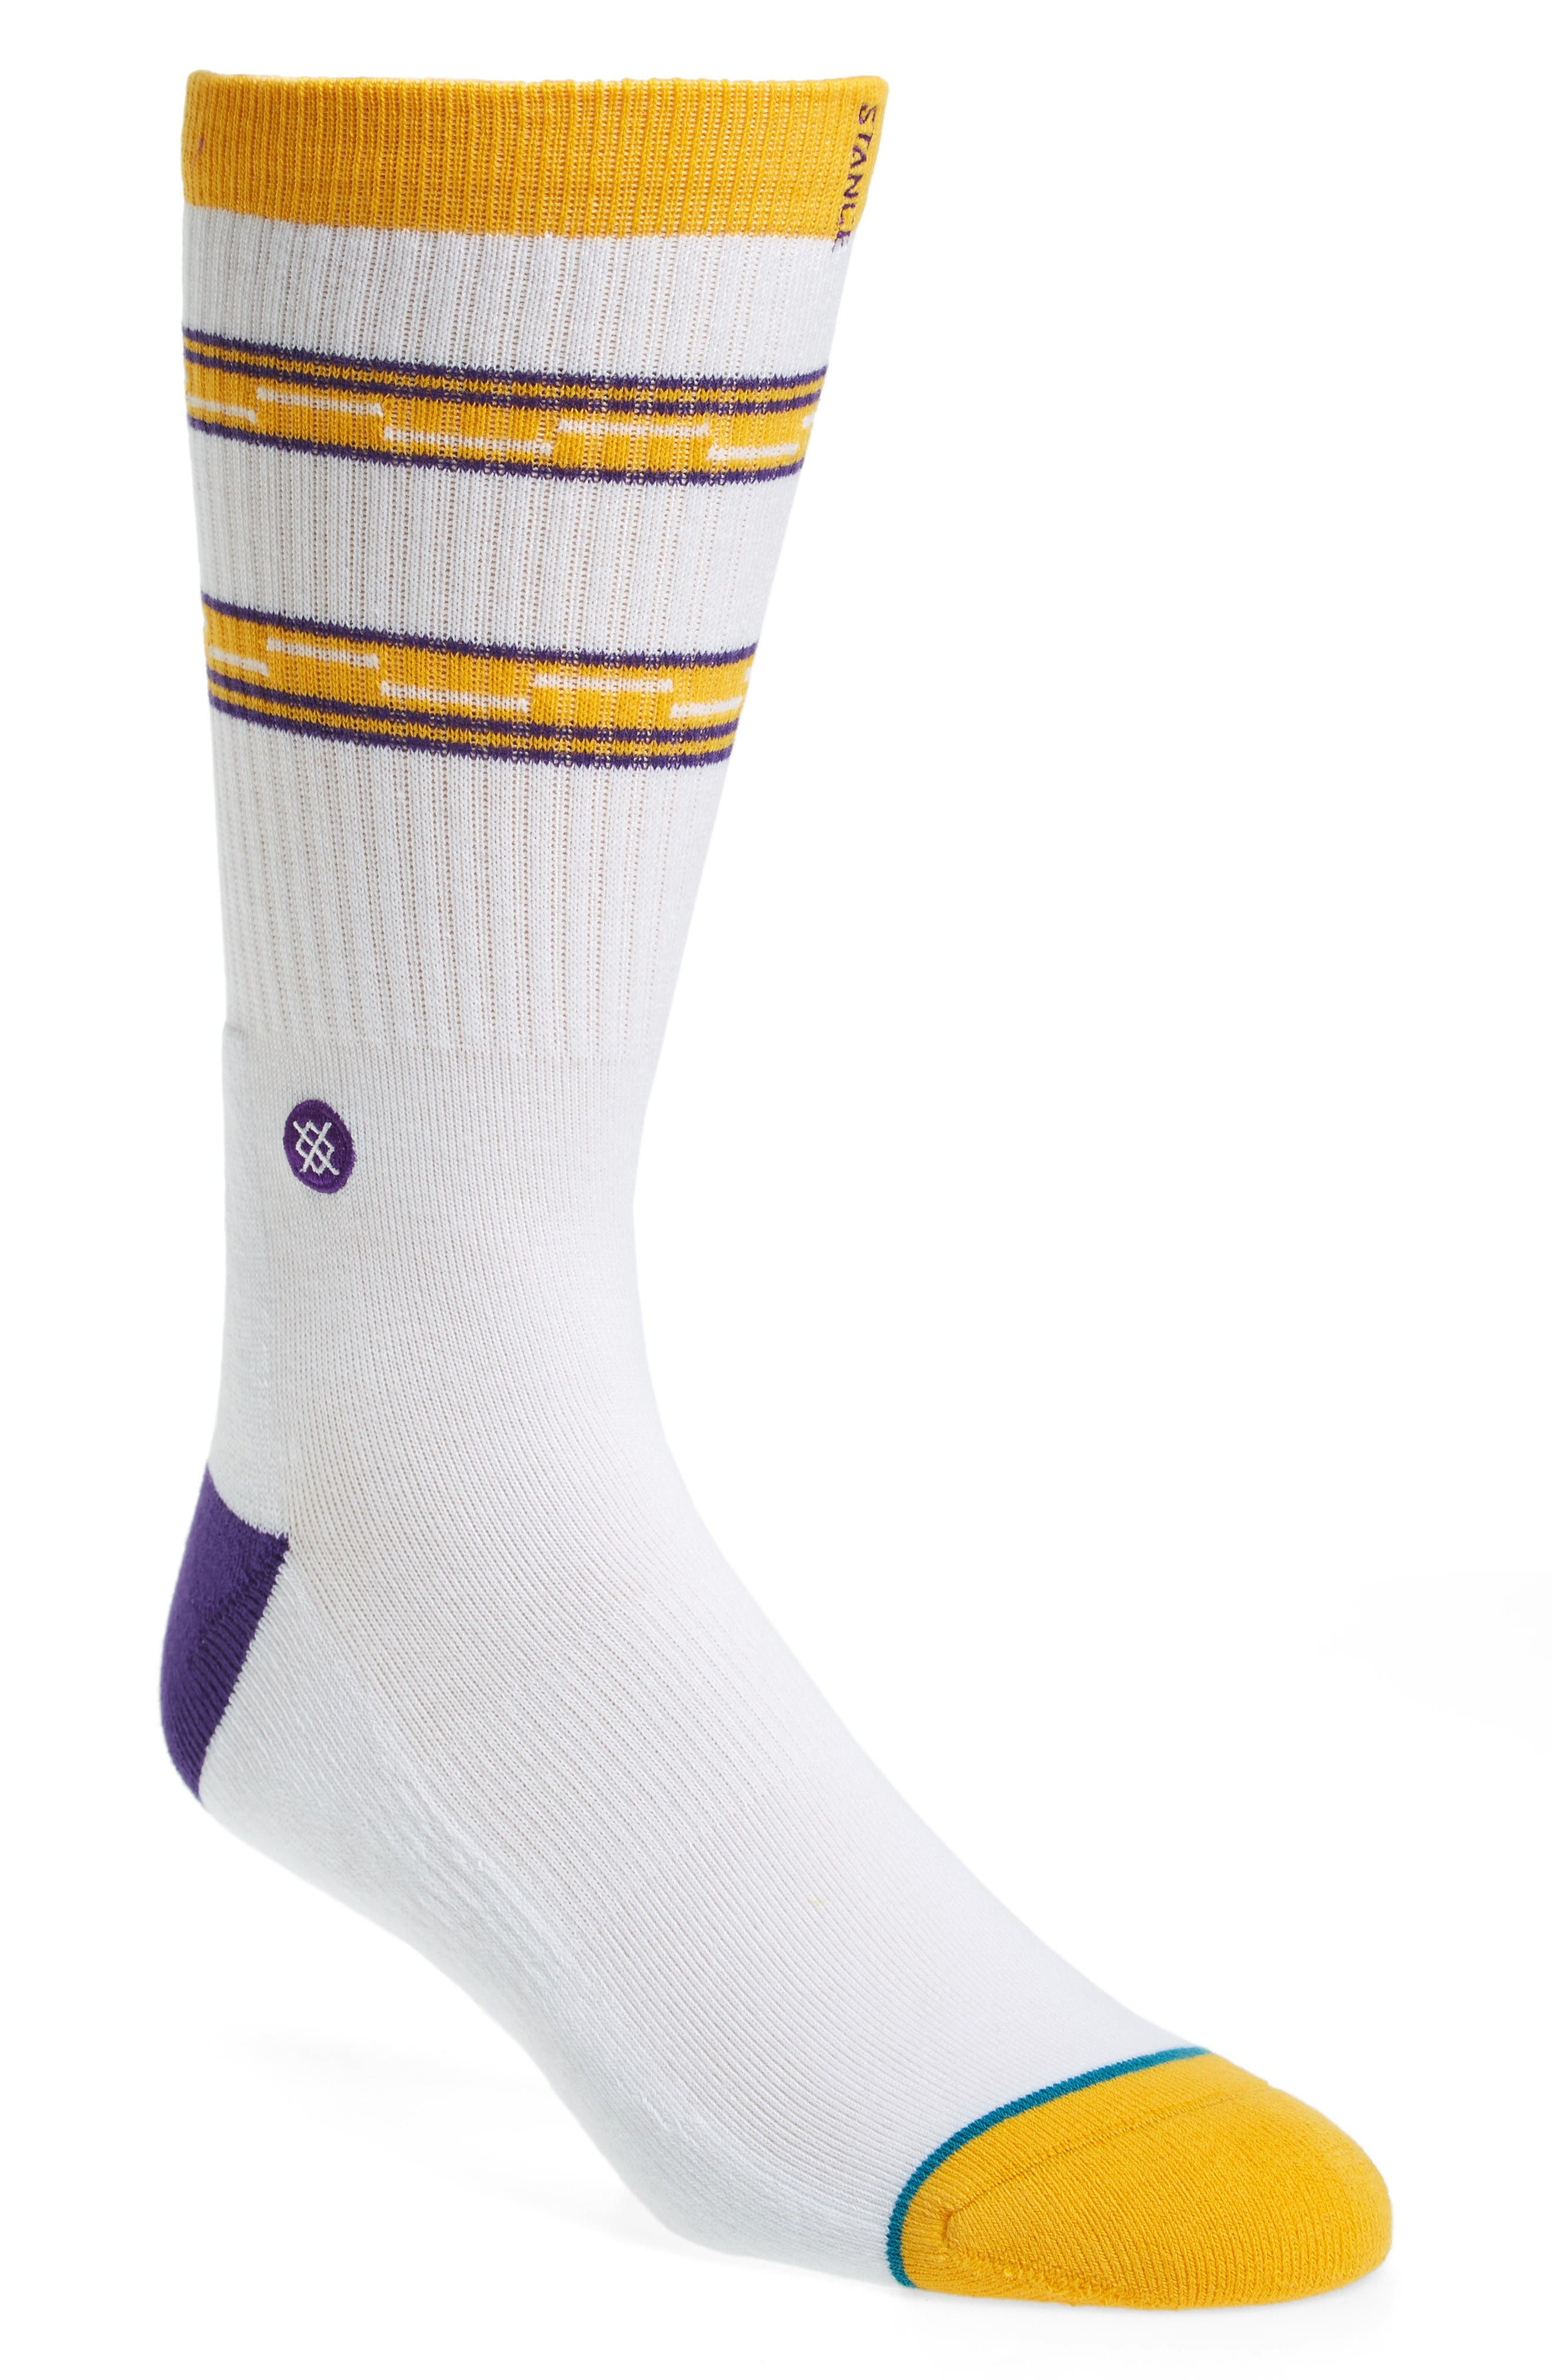 Los Angeles Lakers Arena Core Socks,                         Main,                         color, White